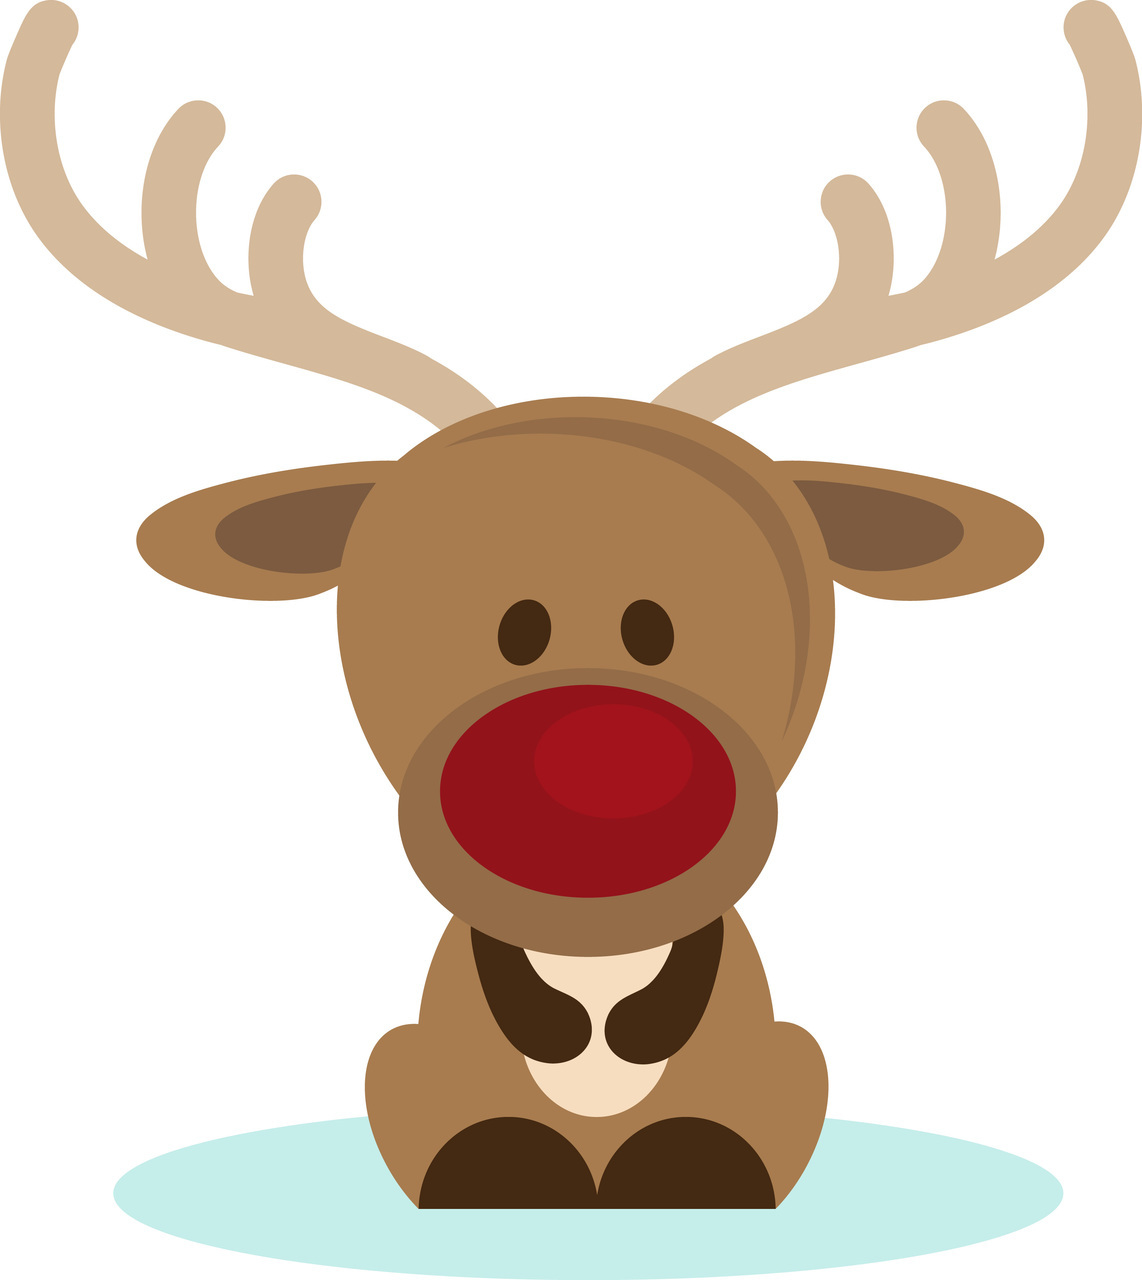 Cute reindeer head clipart - photo#15